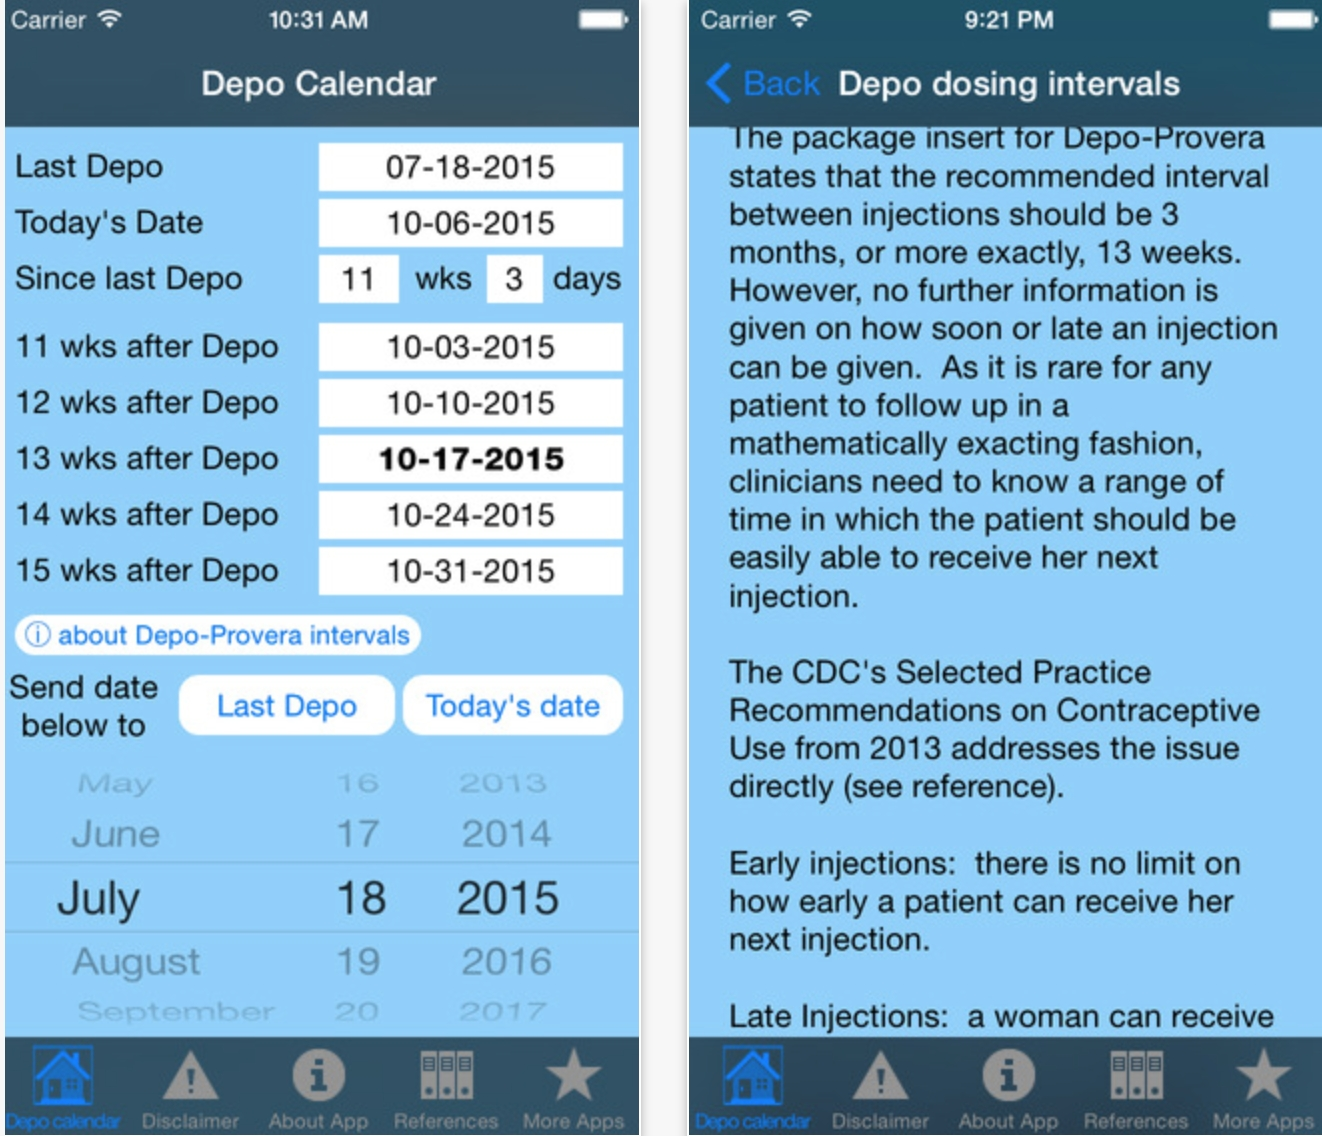 Depo Calendar App Could Significantly Improve Contraception  How To Calculate When I Need My Next Depo Shot